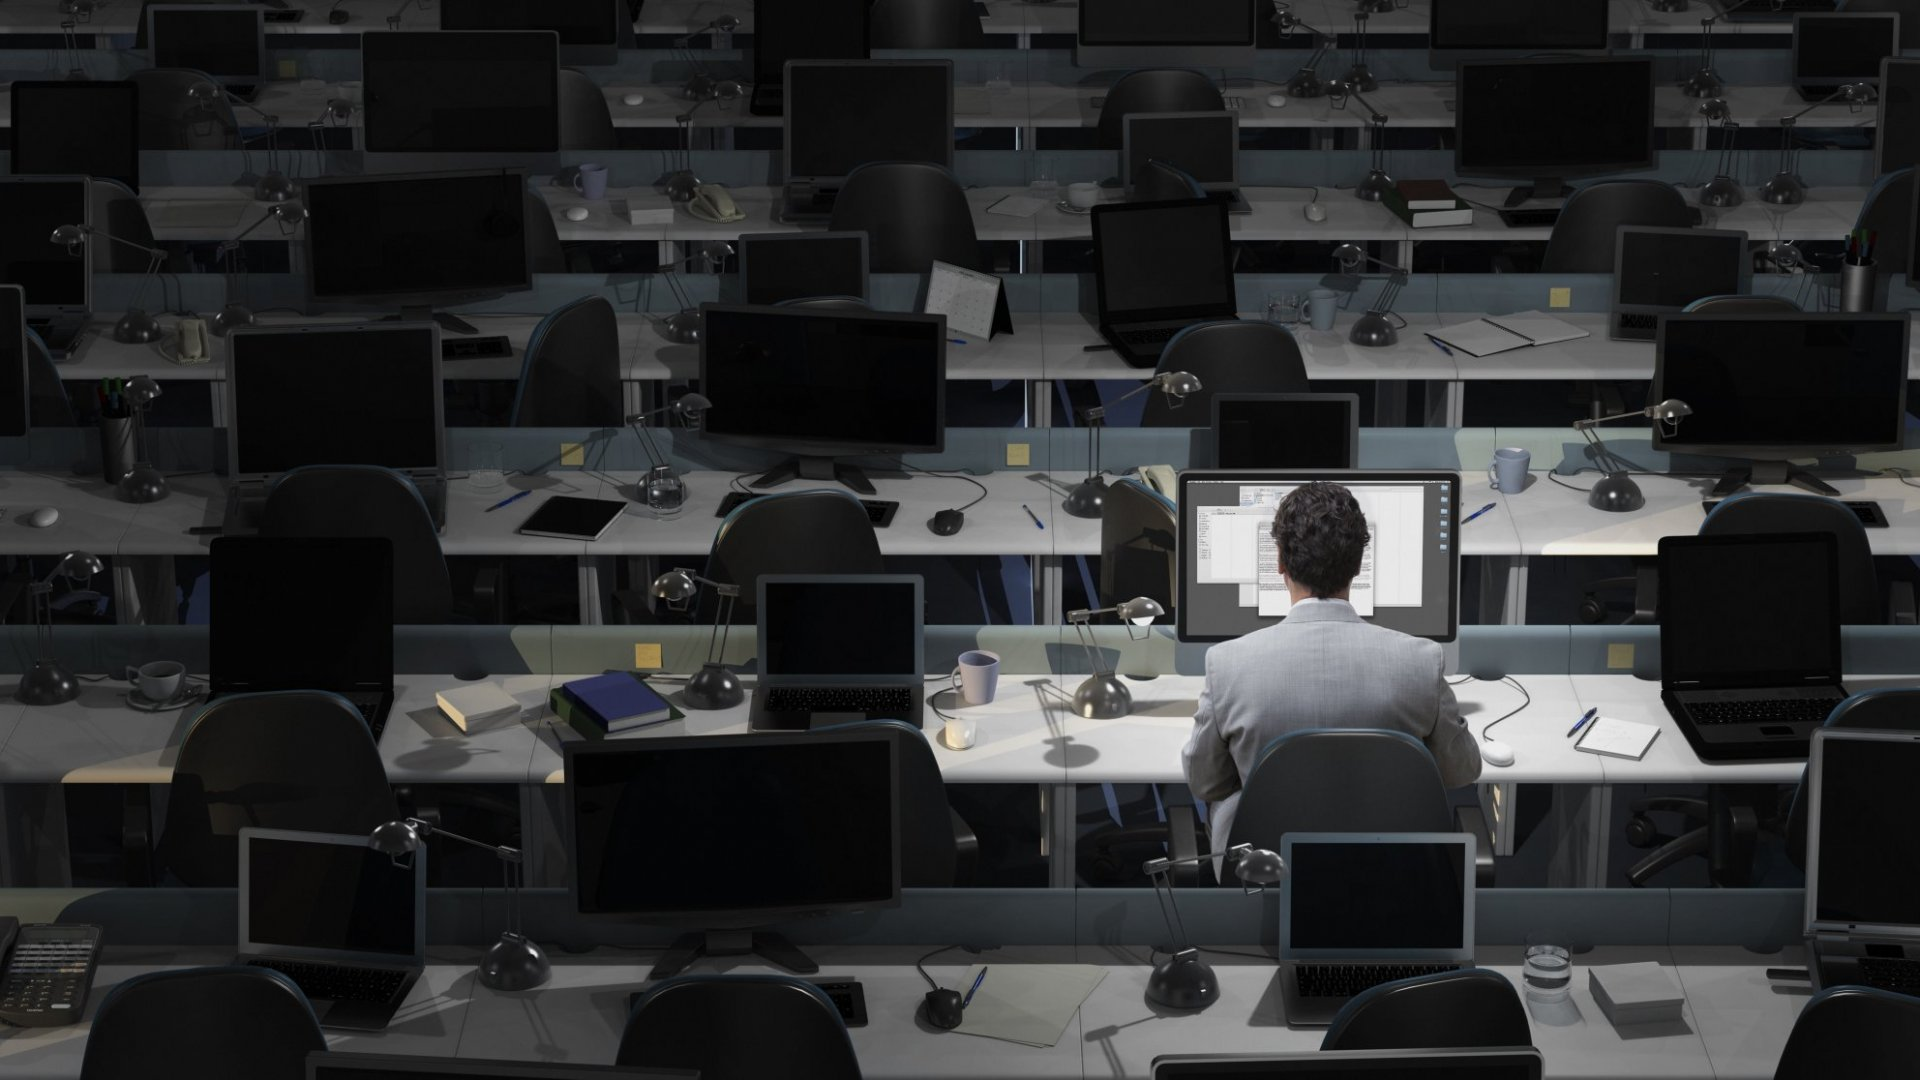 3 Qualities That Make High Performers Different From Workaholics